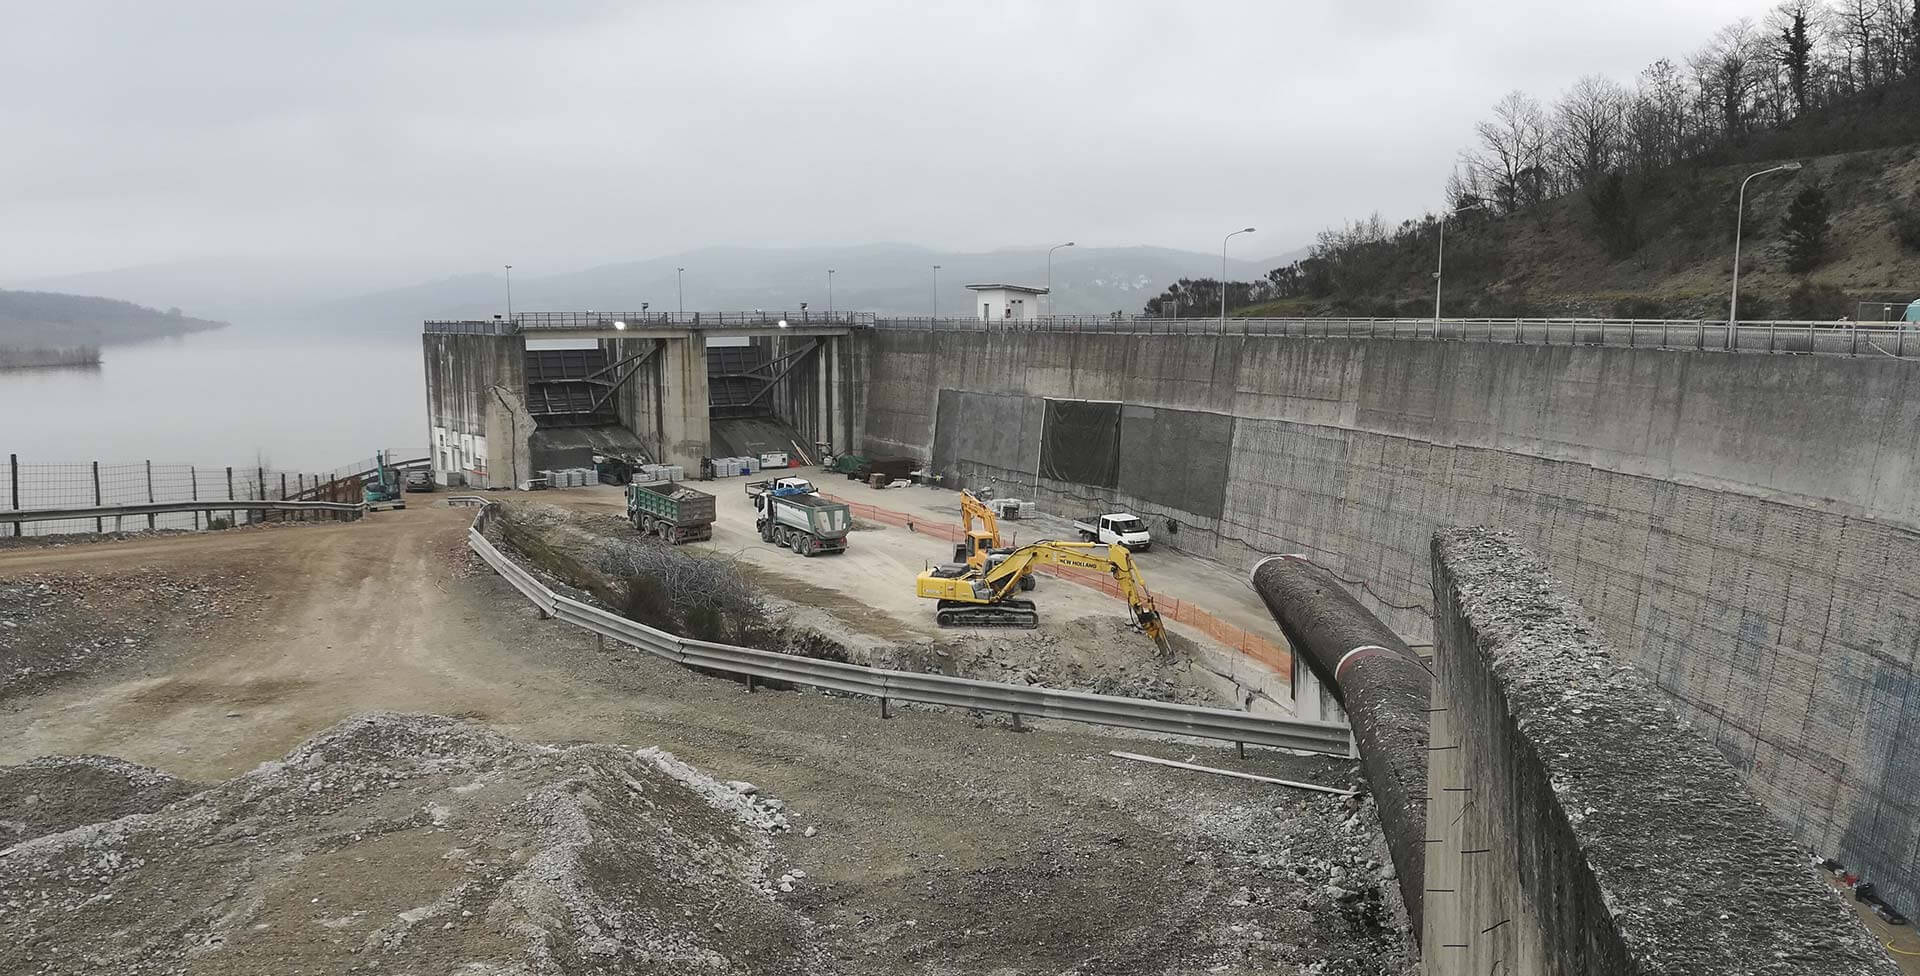 Interventions to rehabilitate the cement-made structure of the surface discharge of the Montedoglio Dam on the Tevere river